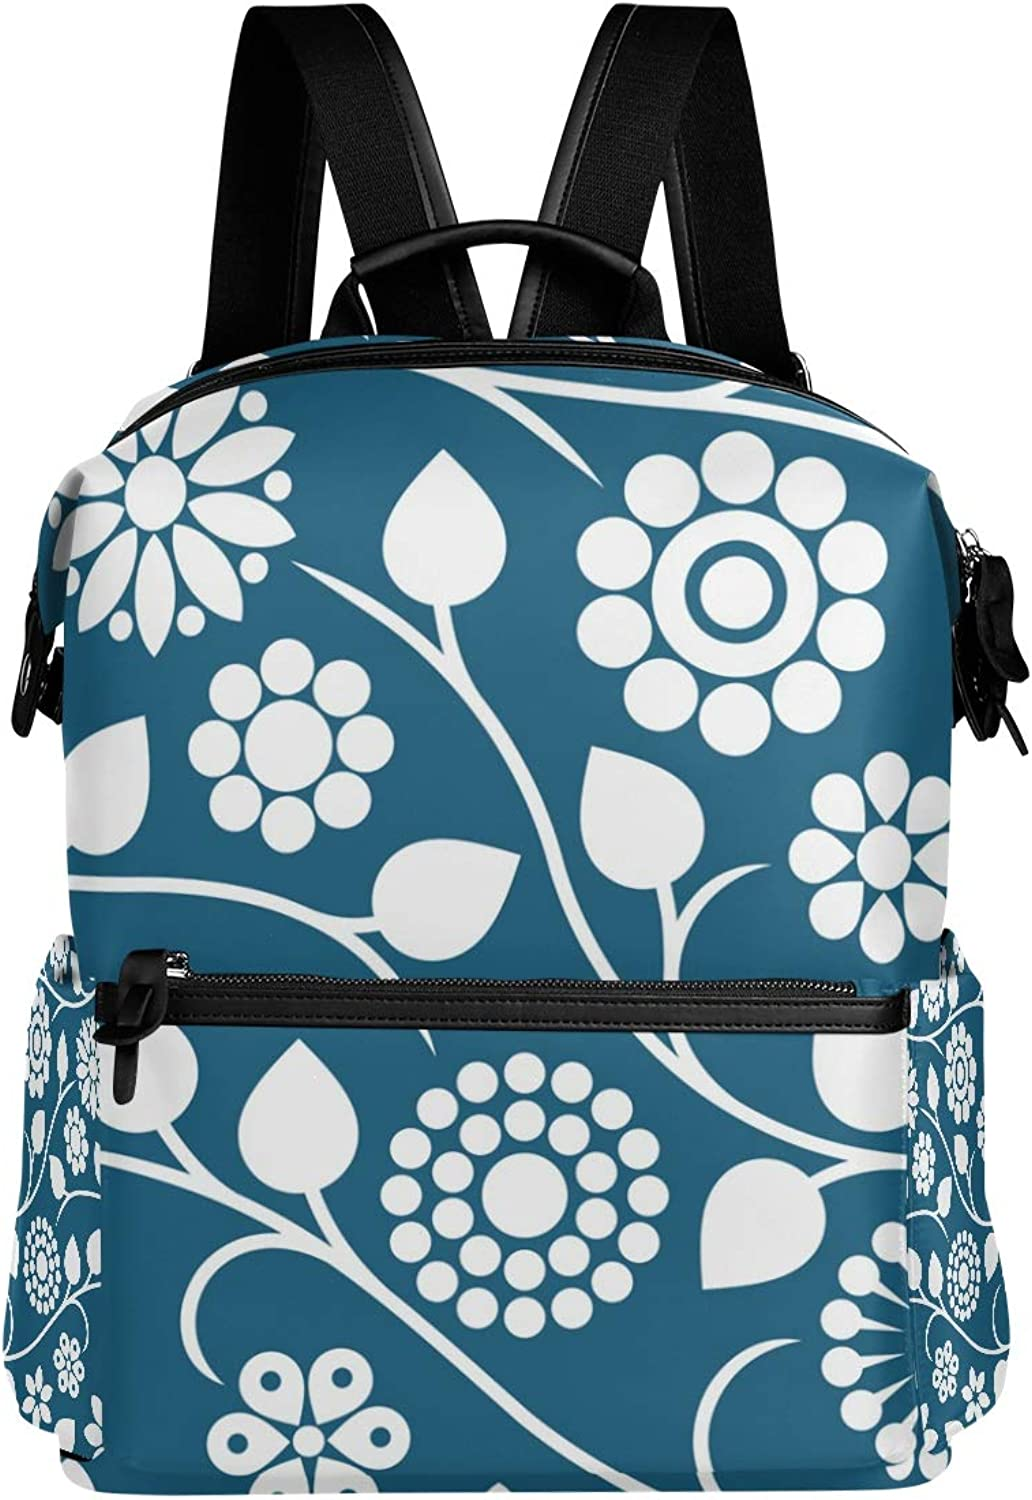 MONTOJ Innovative Artsy Flowers Leather Travel Bag Campus Backpack